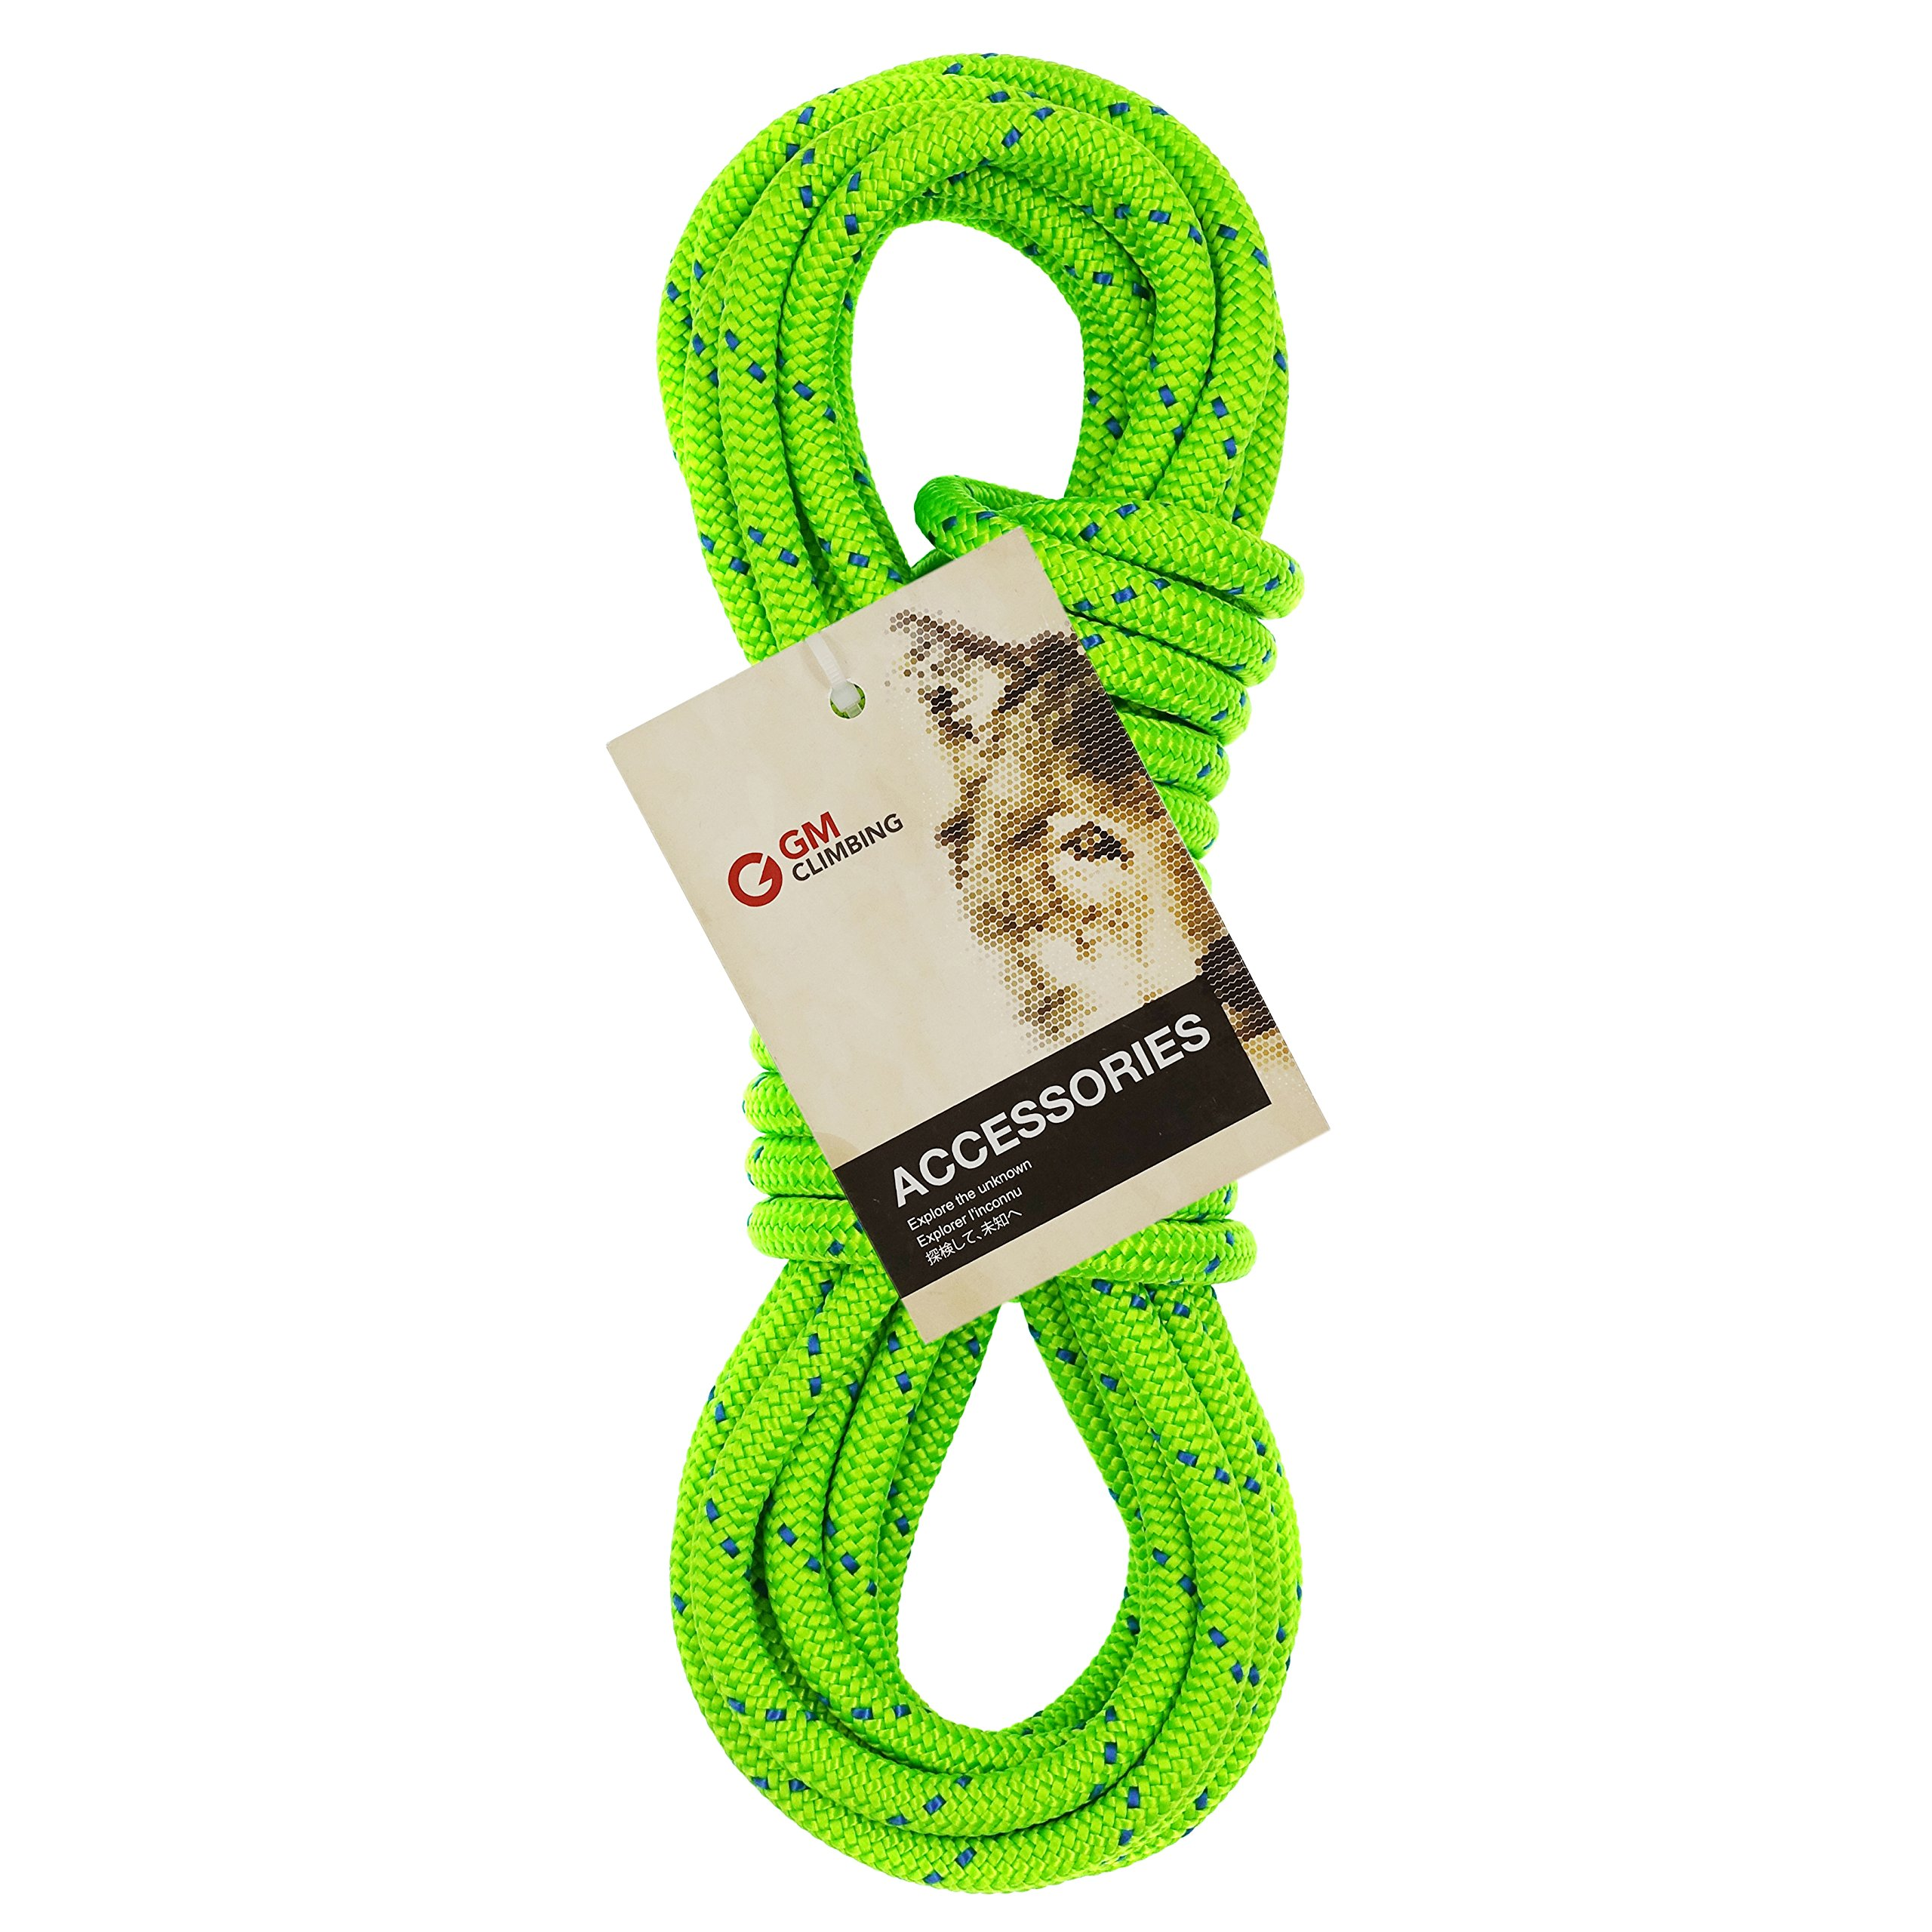 GM CLIMBING 6mm Accessory Cord Rope Double Braid Black Pre Cut CE (Green Flecks, 6mm 100ft) by GM CLIMBING